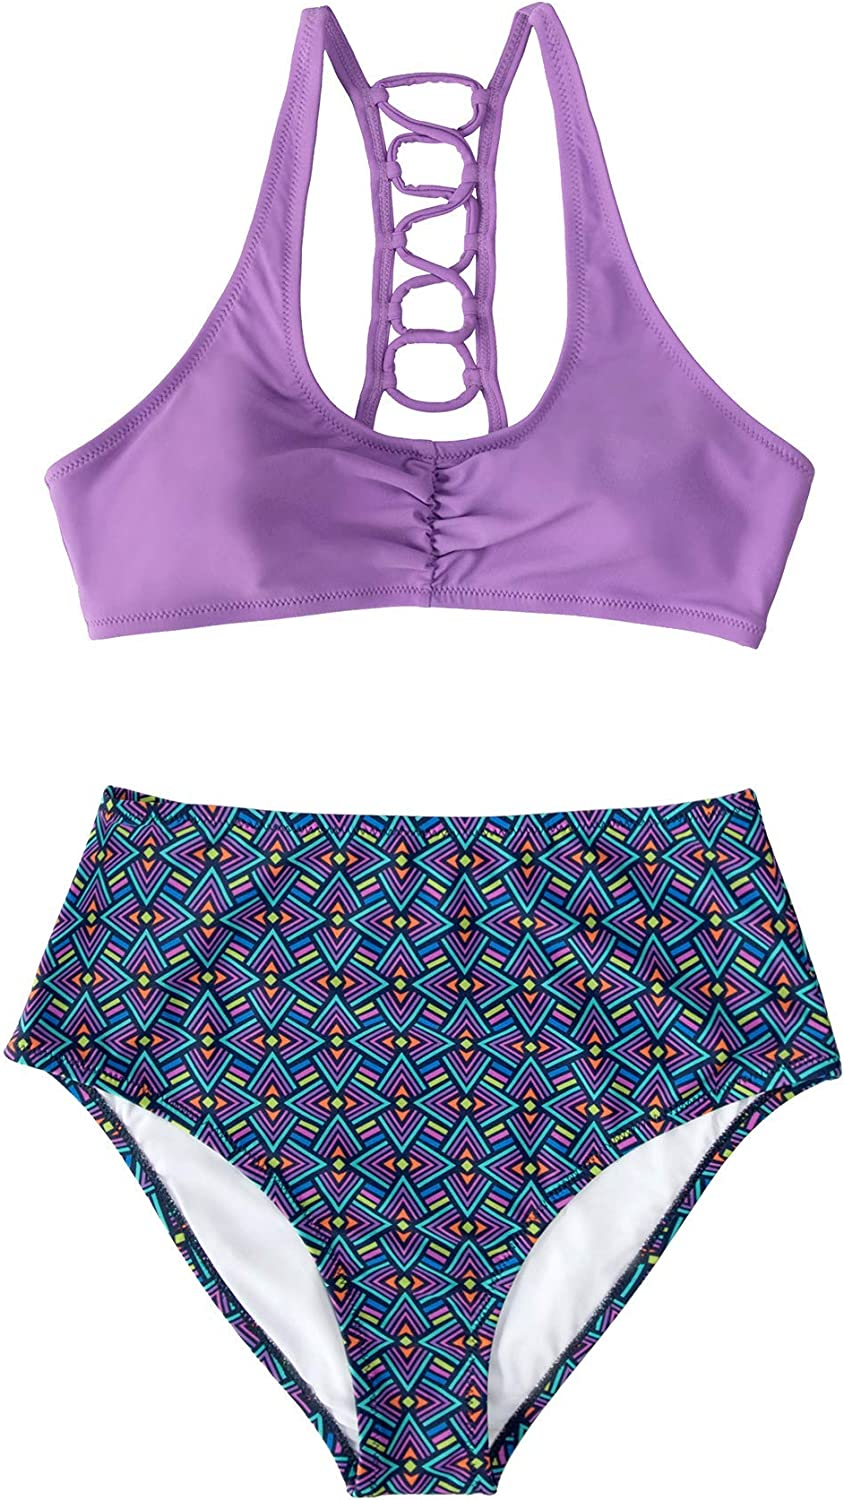 CUPSHE Women's High Waisted Bikini Lace Up Two Piece Swimsuits